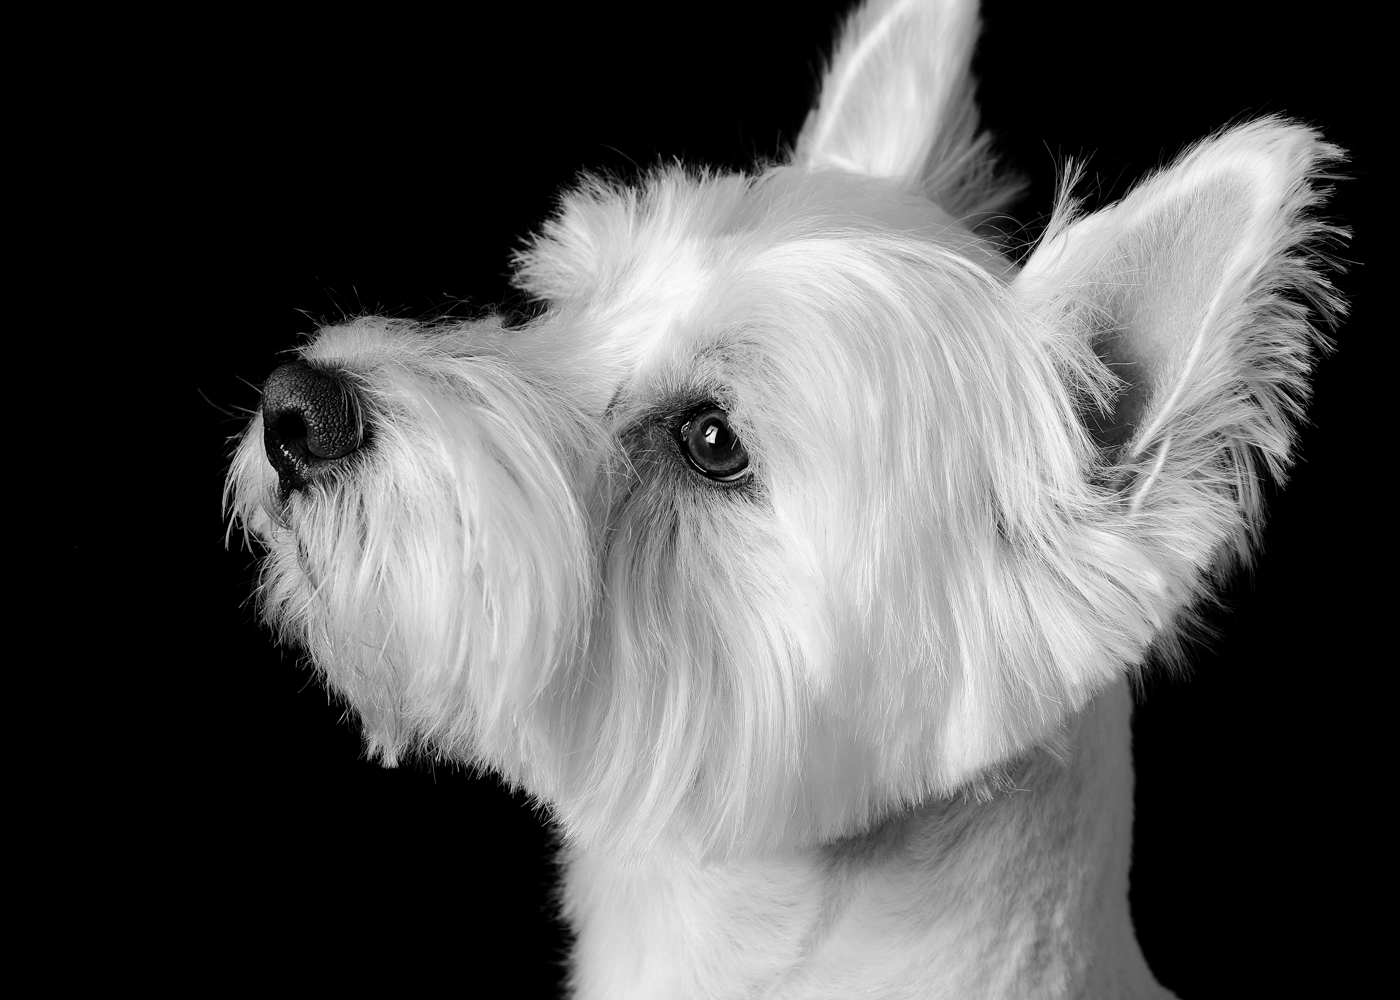 Black and white portrait of Elvis a Westie dog.